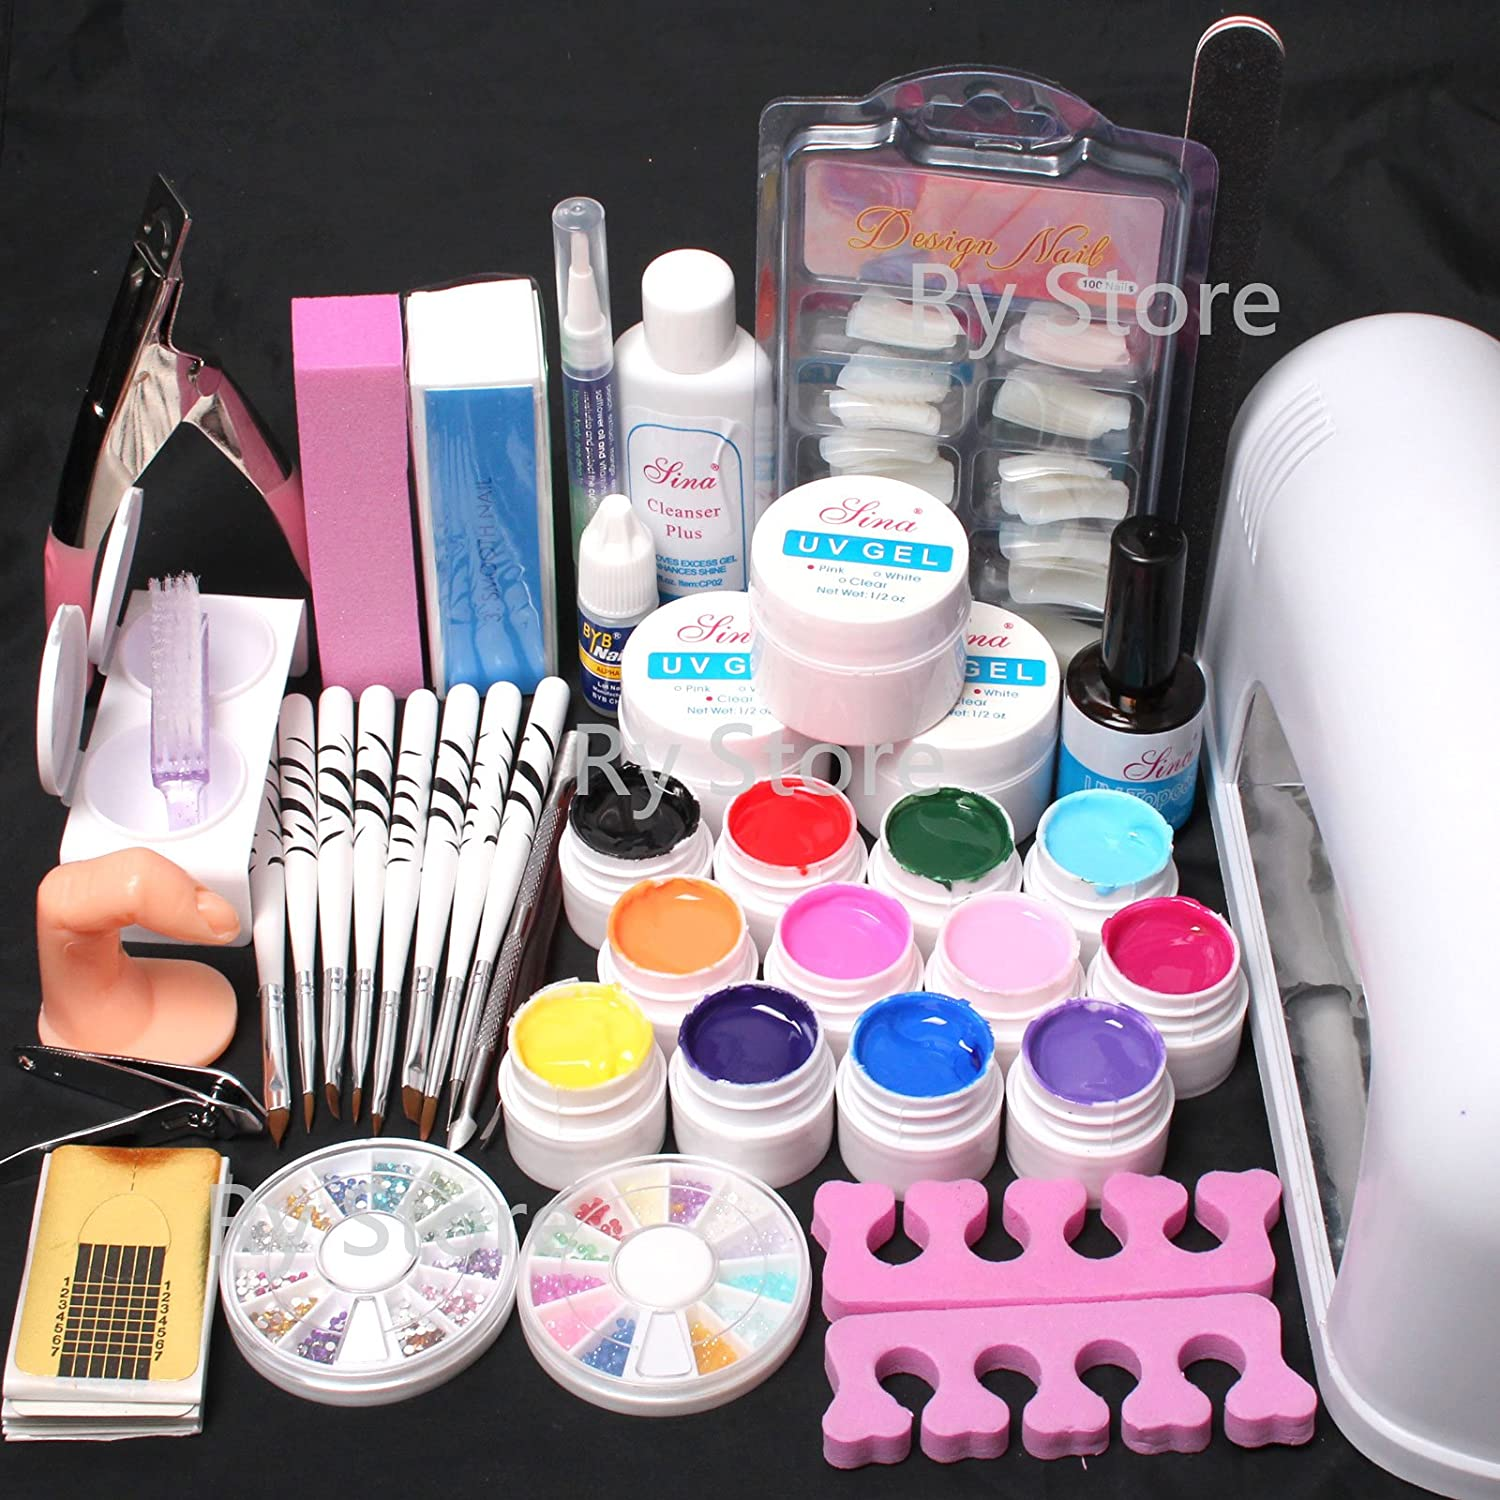 Hot Sale~ US Seller 25 in 1 Combo Set Professional 9W Lamp Dryer Color UV Builder Gel DIY Nail Art Decorations Kit Brush Buffer Cuticle Revitalizer Oil Pen Tools Natural White Nail Tips Rhinestones Pearls Cutter Sanding Files Forms Glue UV Gel Set